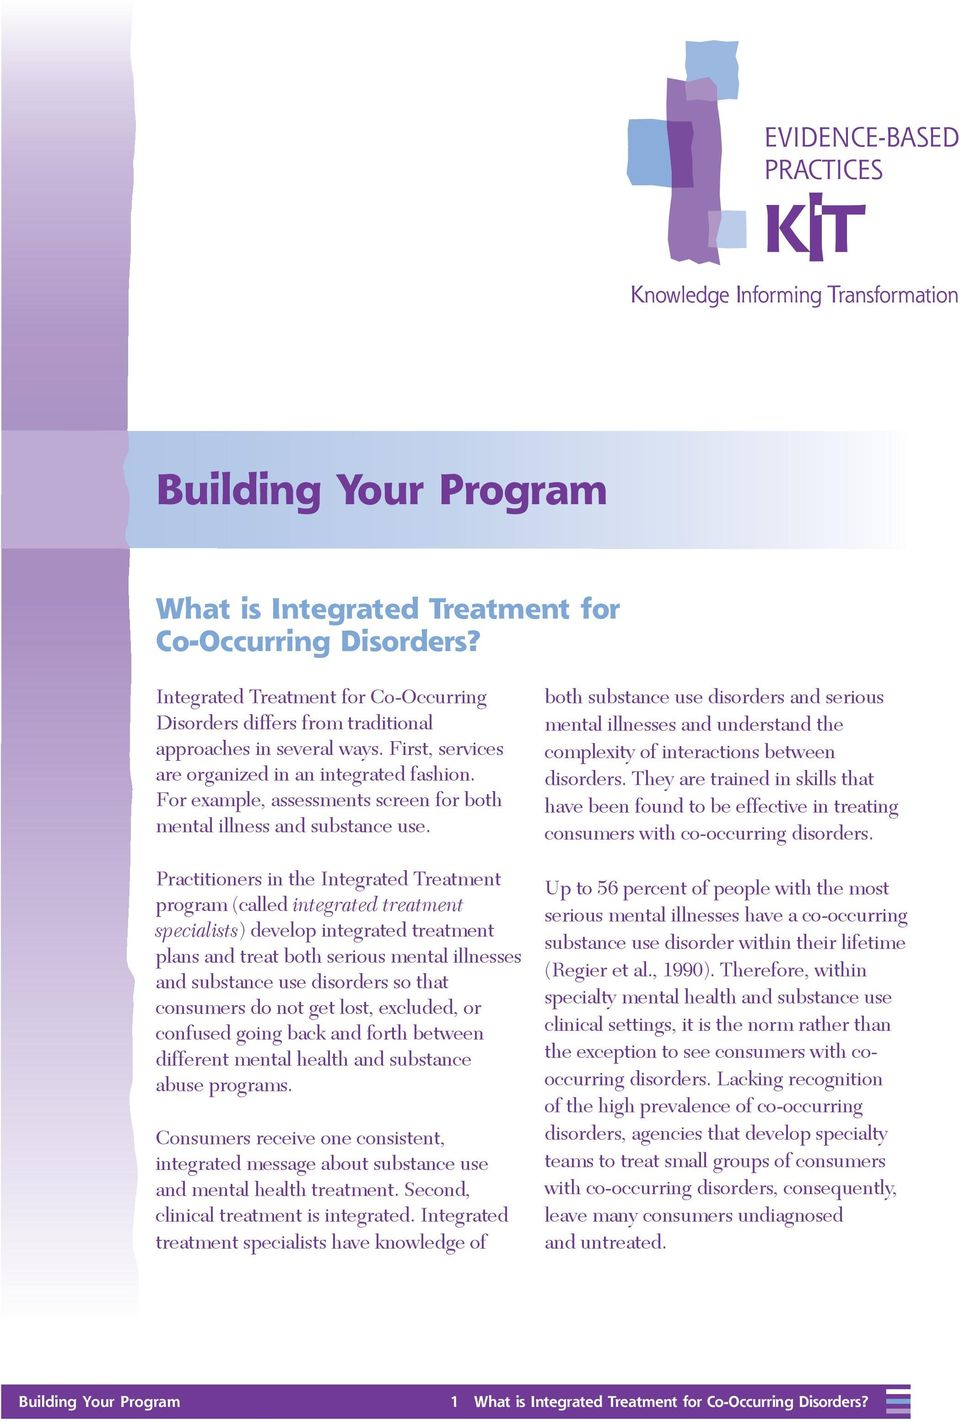 Practitioners in the Integrated Treatment program (called integrated treatment specialists) develop integrated treatment plans and treat both serious mental illnesses and substance use disorders so